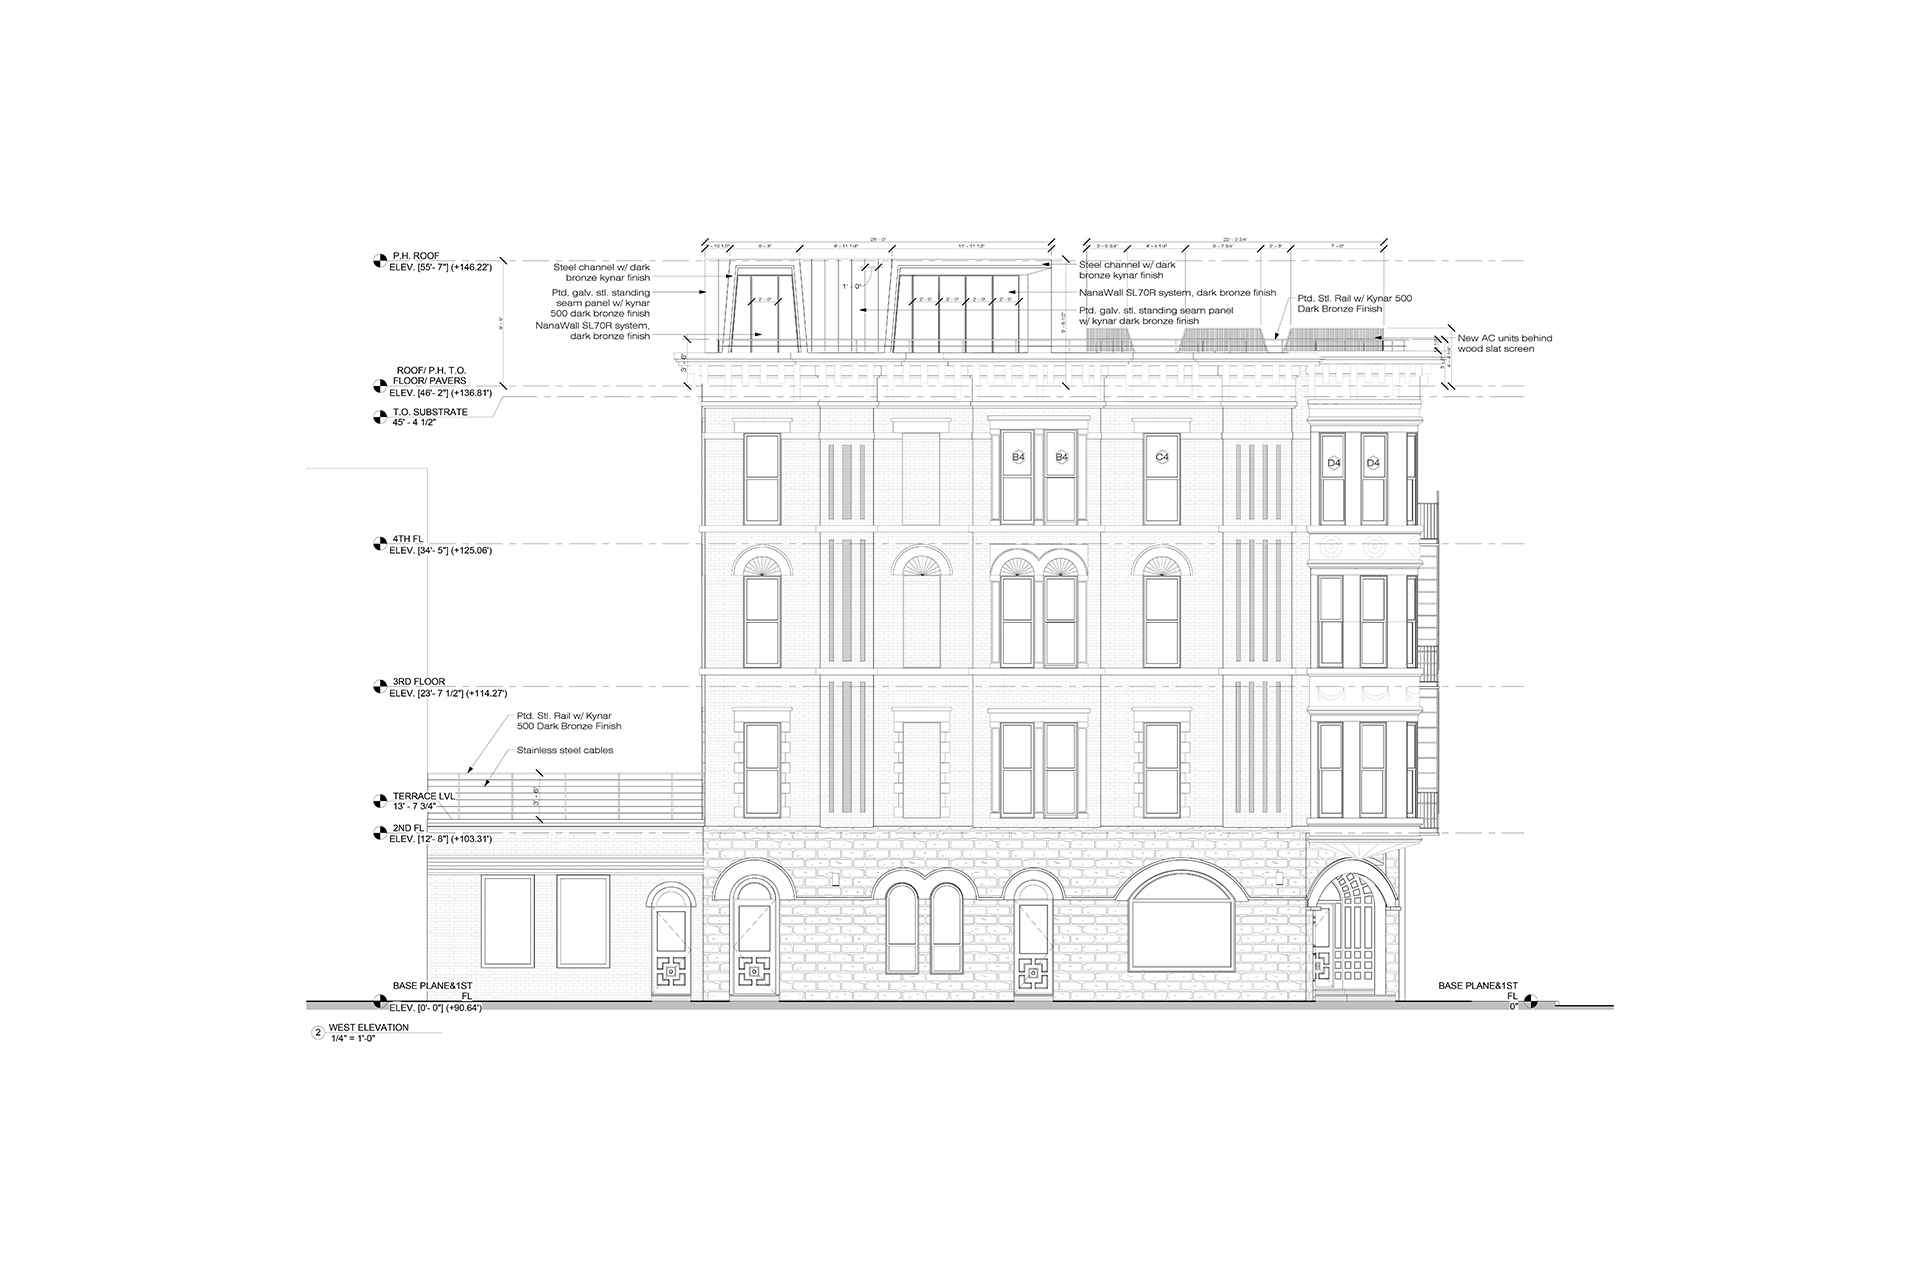 C:UsersOPerA EightDocuments576 Vanderbilt_PENTHOUSE_DOB Set_